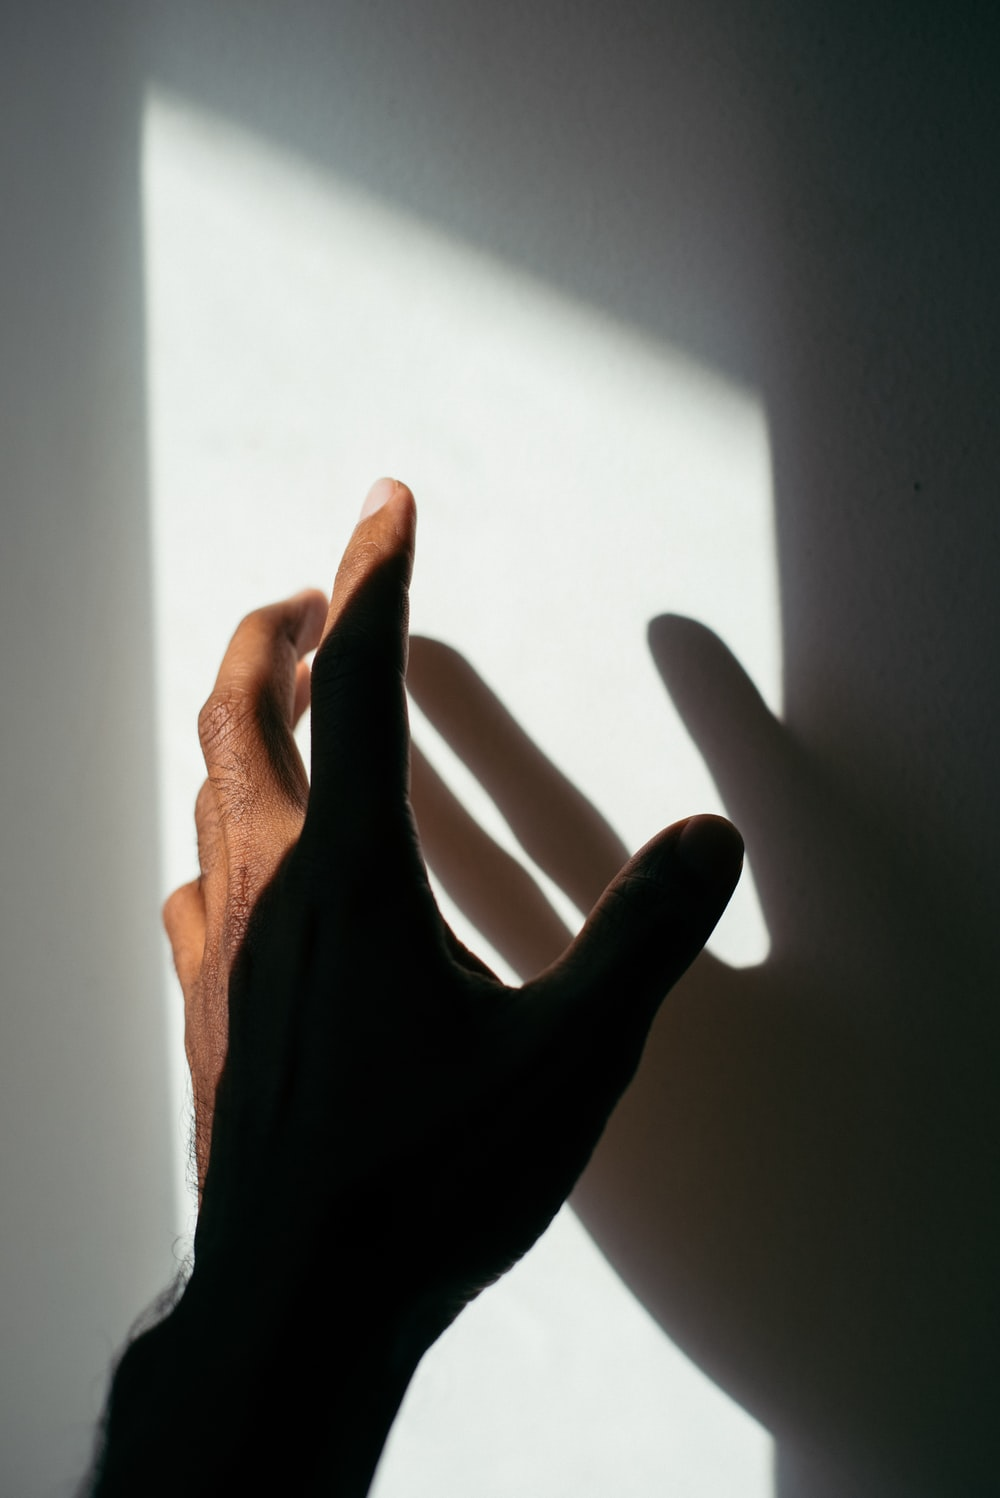 person's left hand and shadow